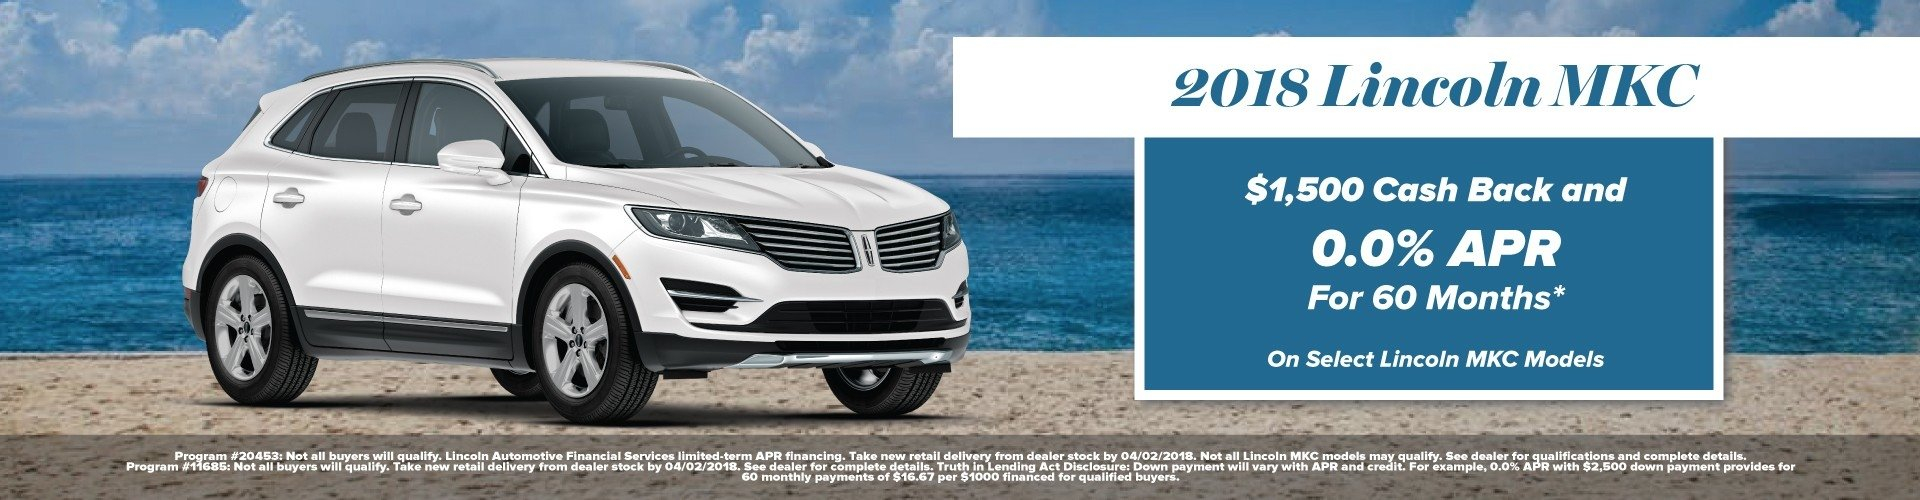 2018 Lincoln MKC Incentives at Bozard Lincoln of St Augustine